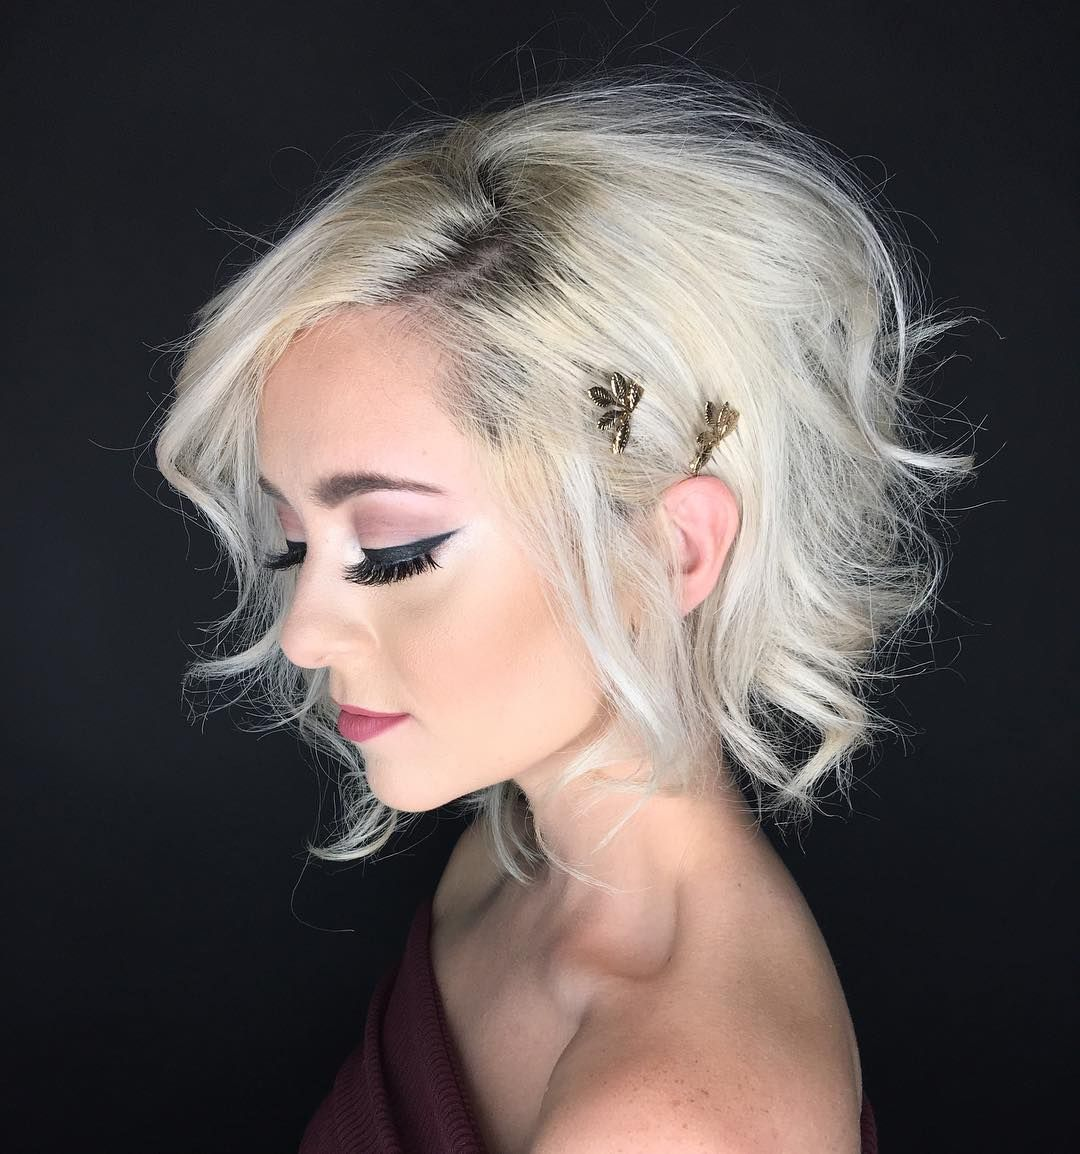 Liz mace platinum blonde hair short hairstyle for formal event